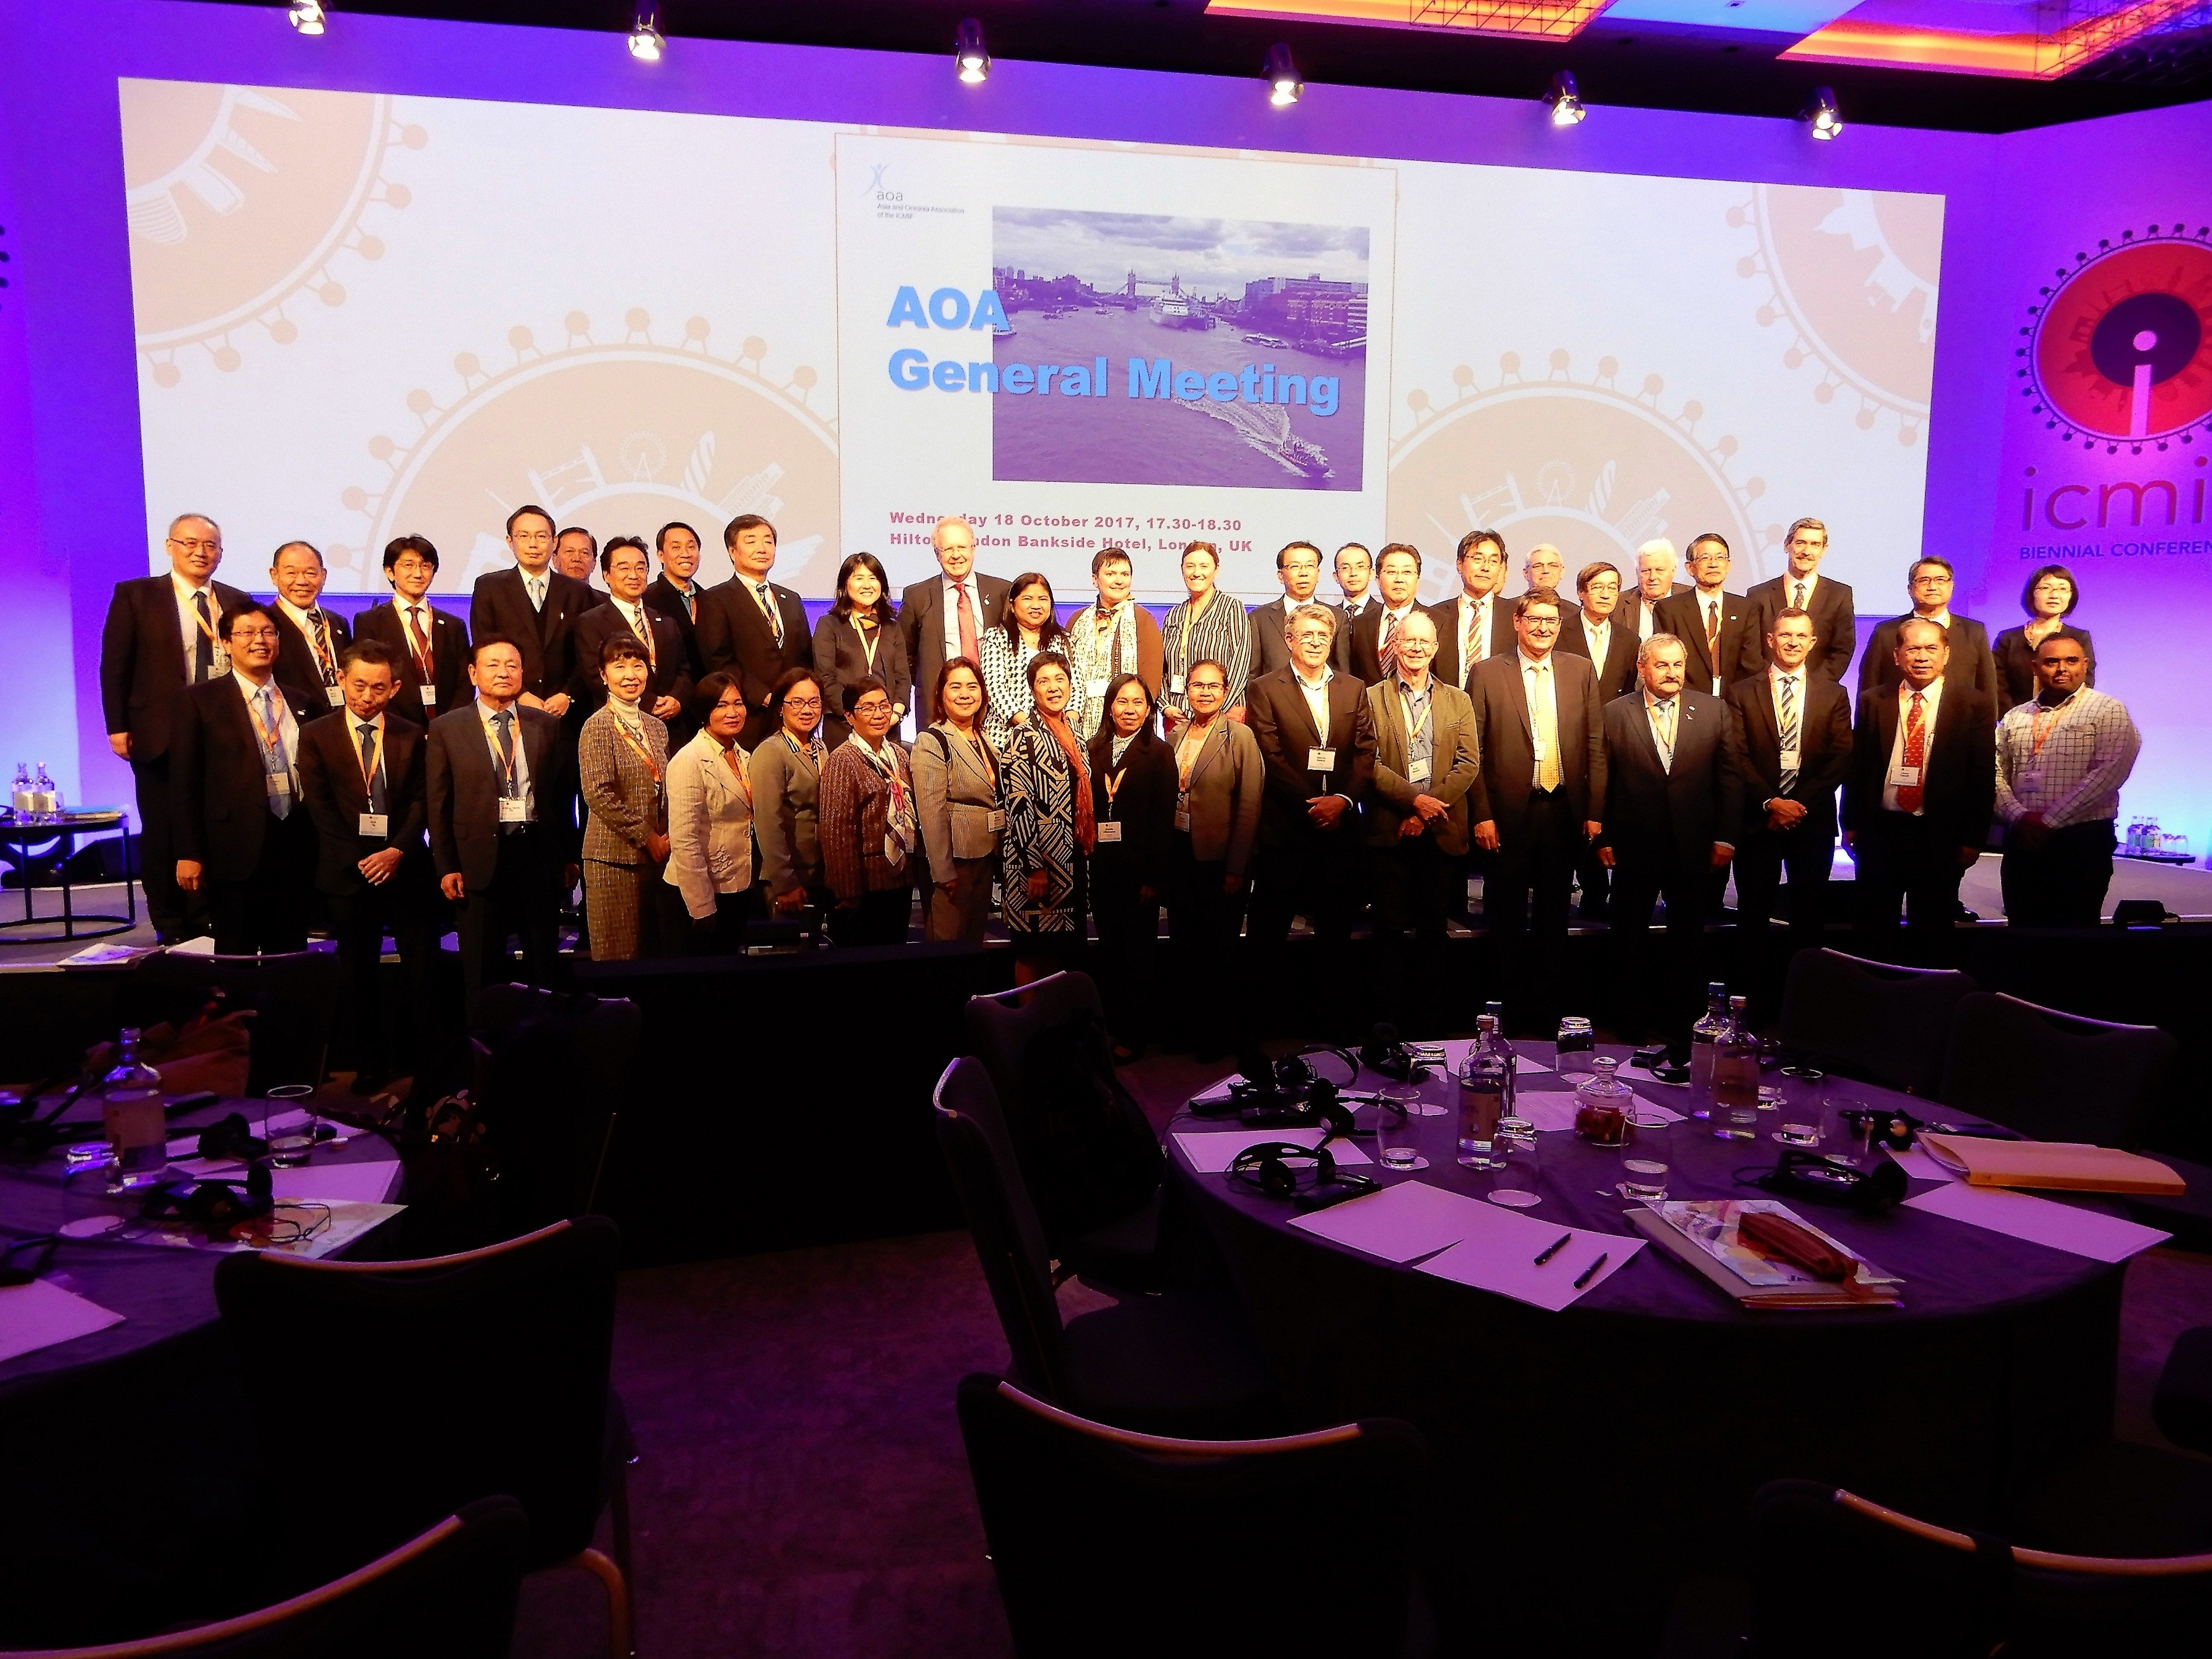 The delegates during the Asia Oceana Association (AOA) General Meeting and the AOA Board Directors Meeting last October 18, 2017 at ICMIF Biennal Conference, London, UK.